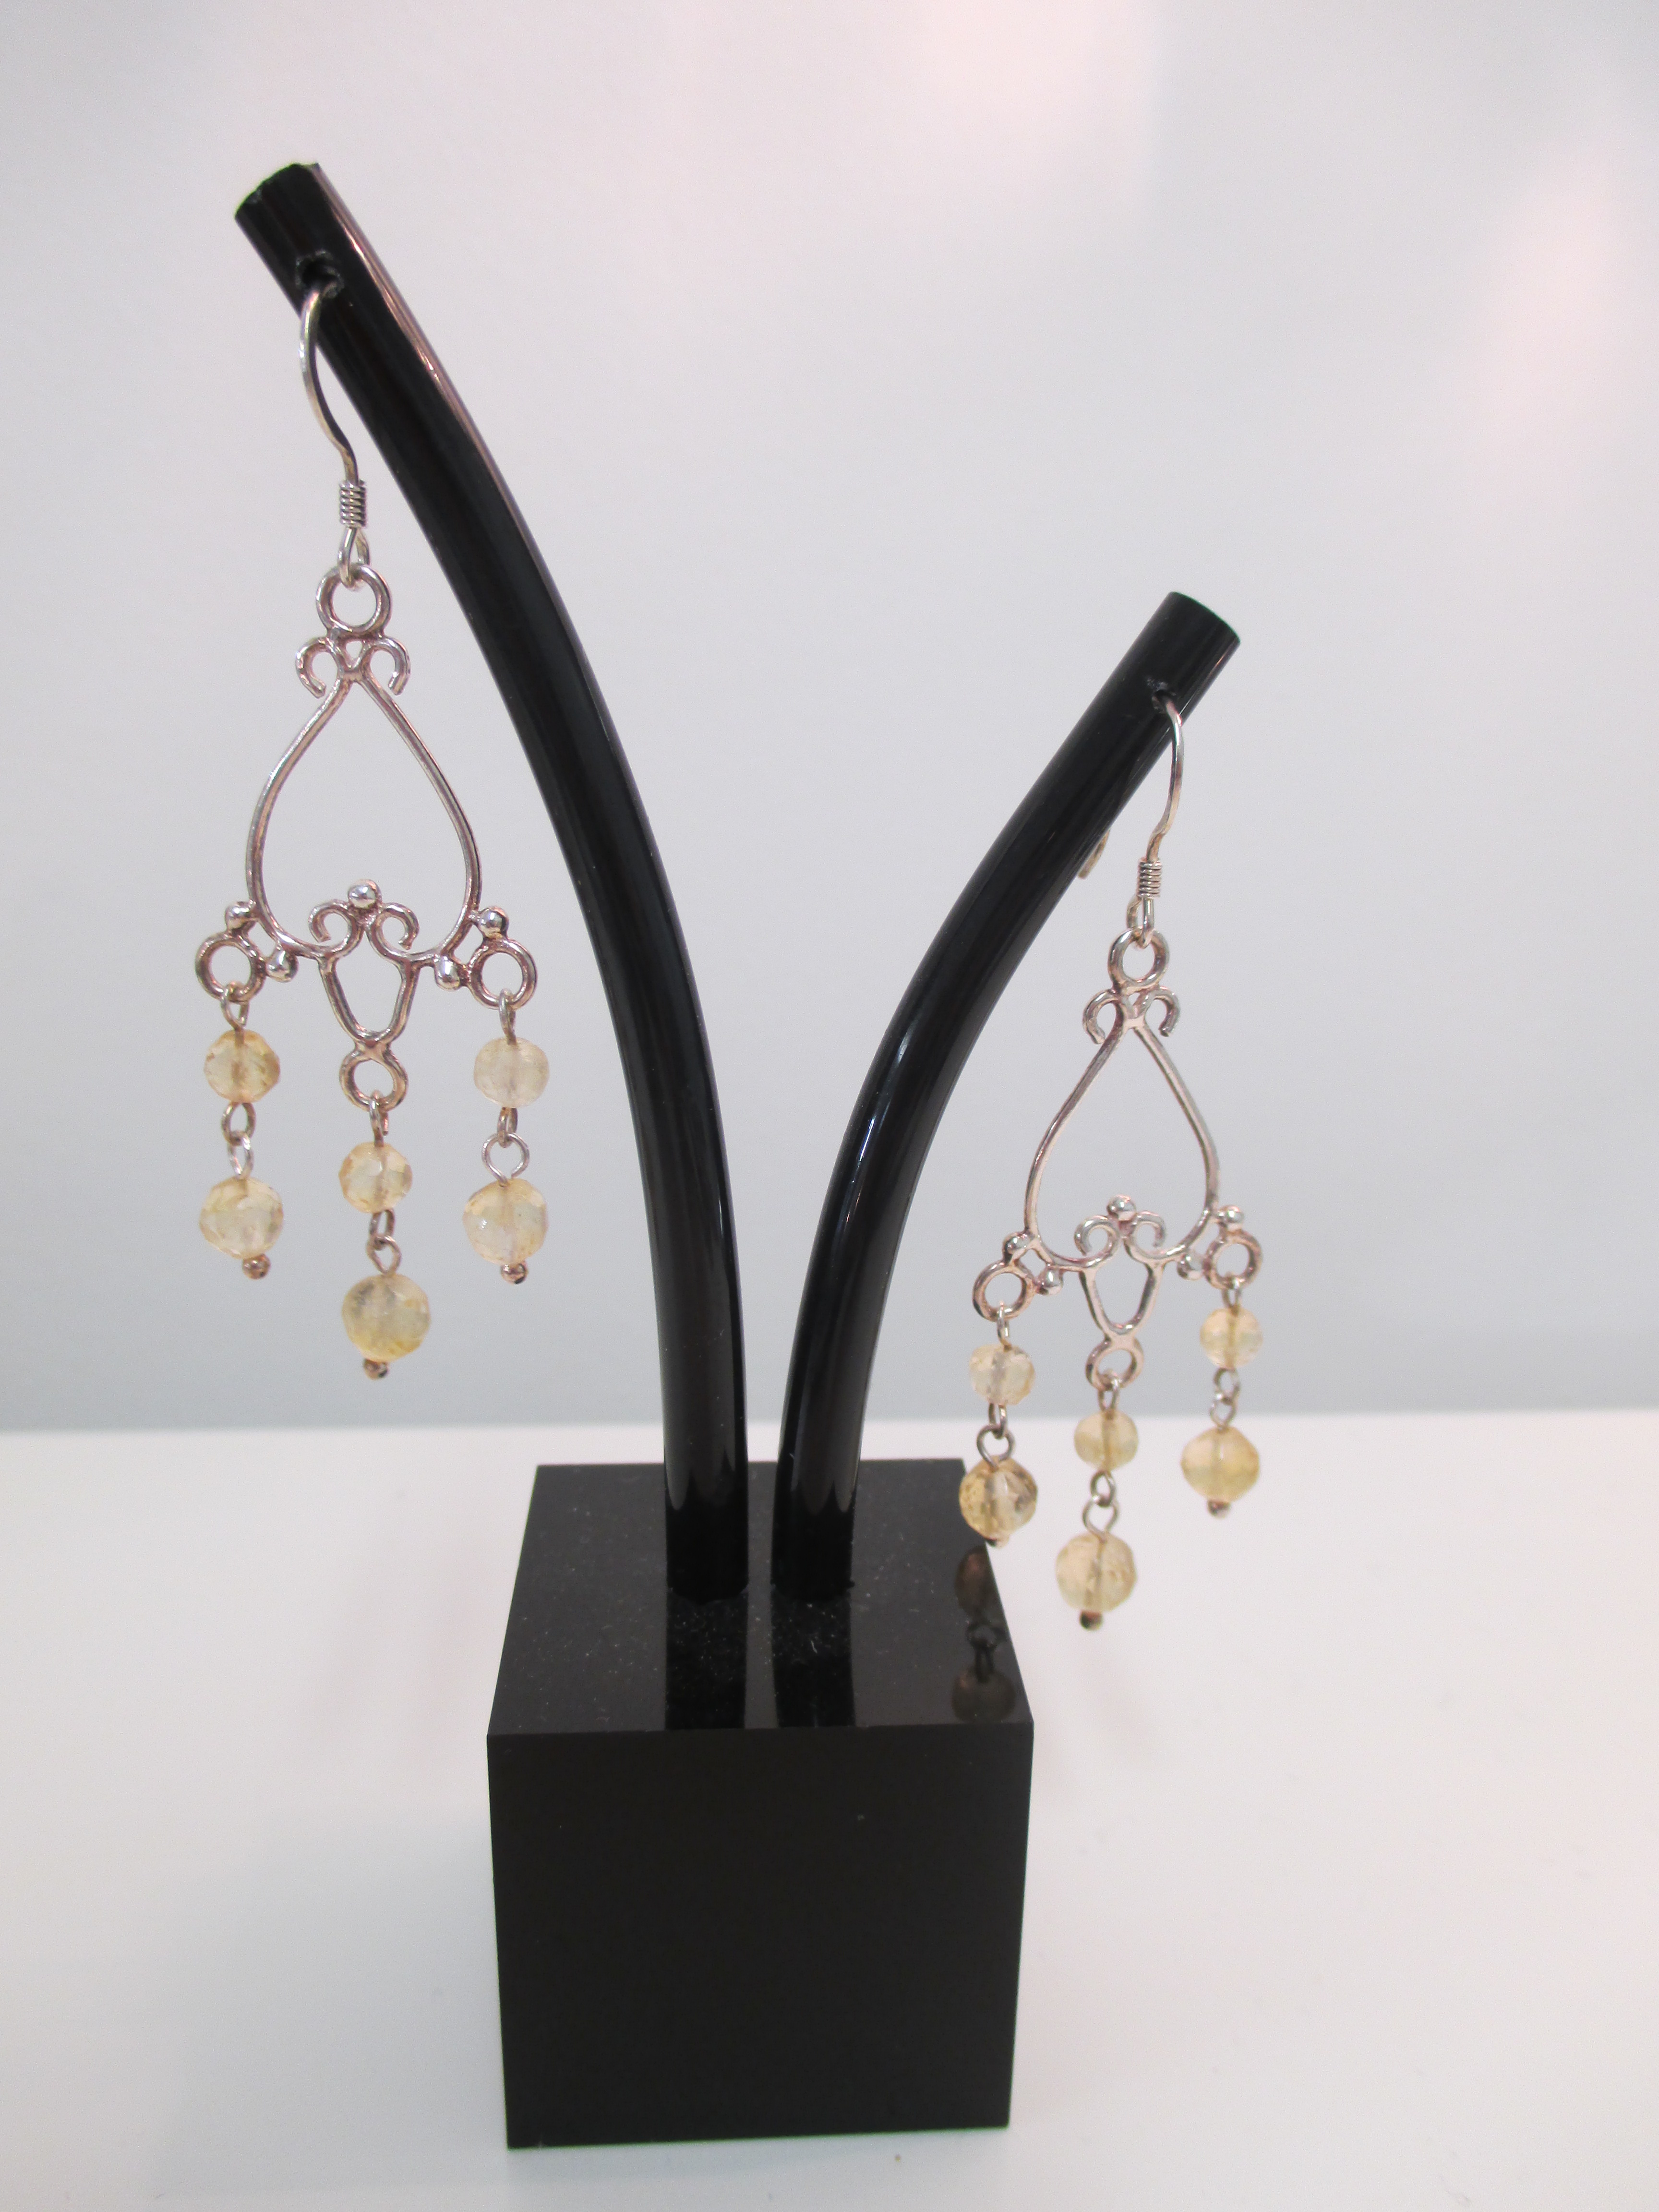 Citrine chandelier earrings made by marianne citrine chandelier earrings mozeypictures Gallery